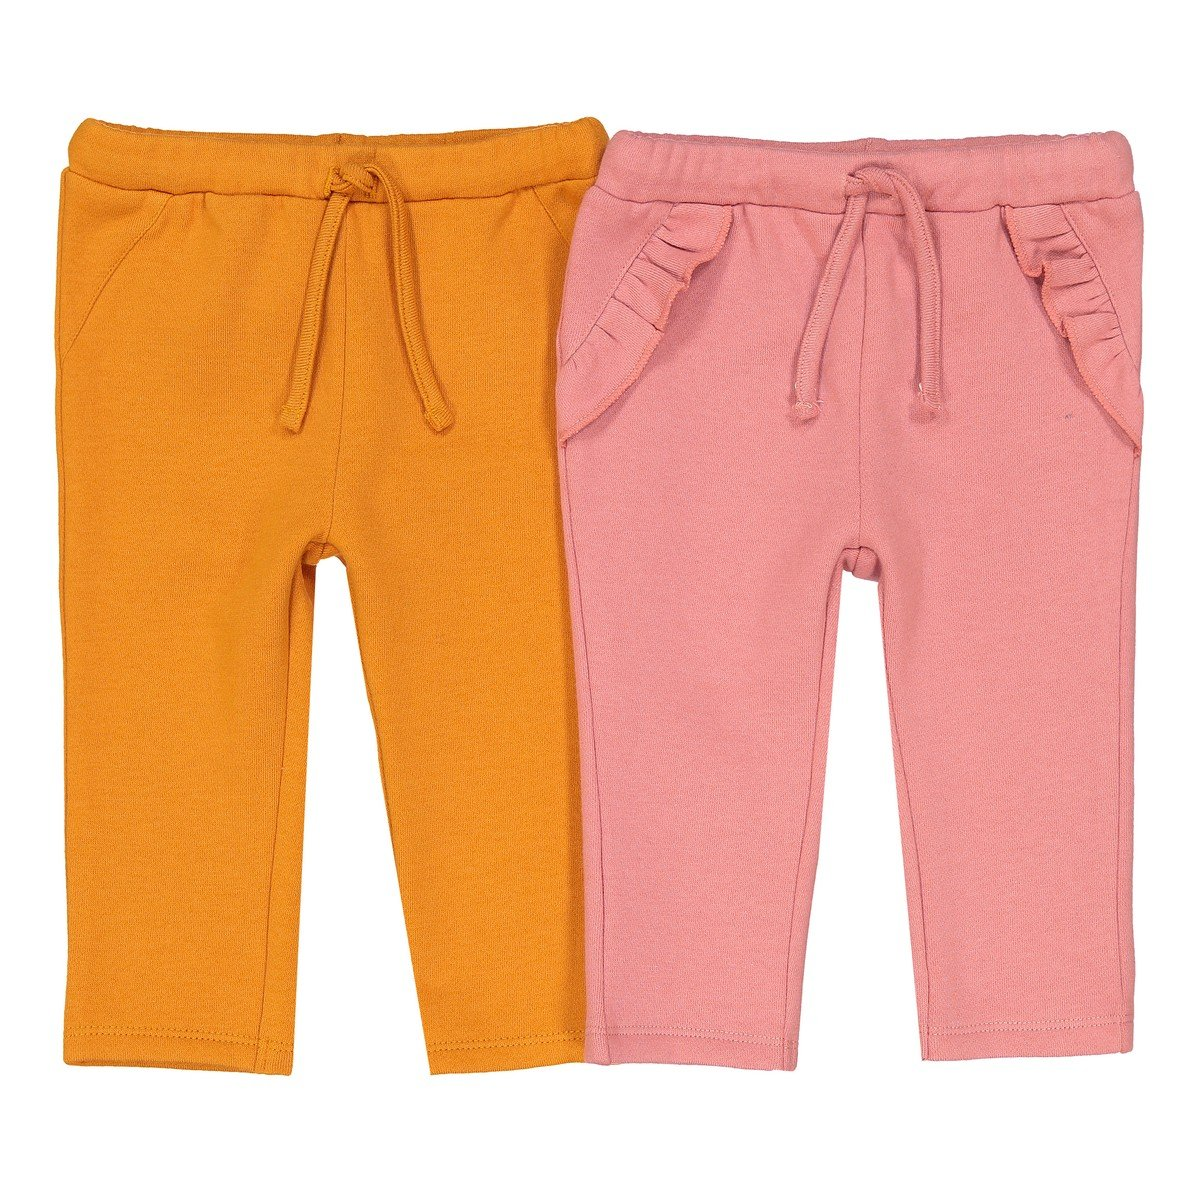 1 Month-3 Years La Redoute Collections Big Girls Pack of 2 Plain Trousers